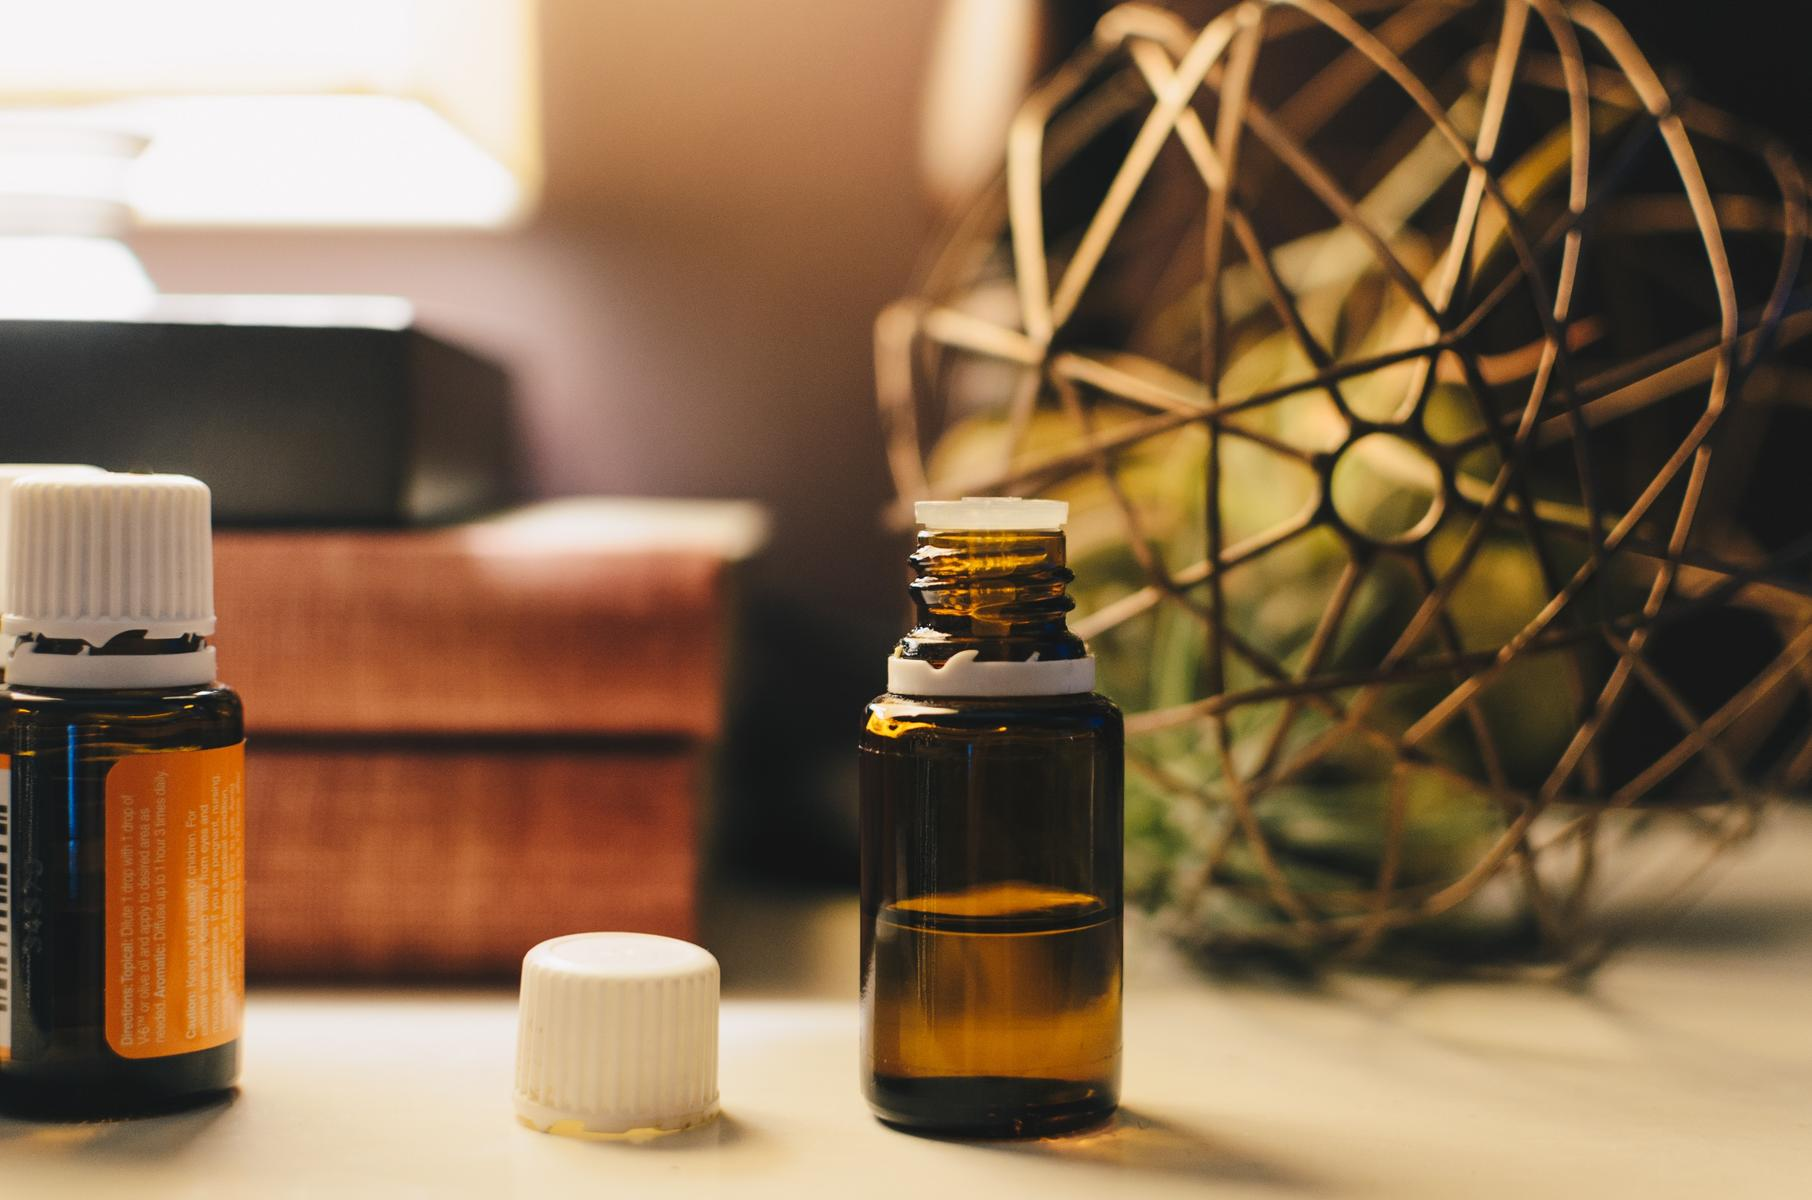 Essential Oil Bottle On Desk